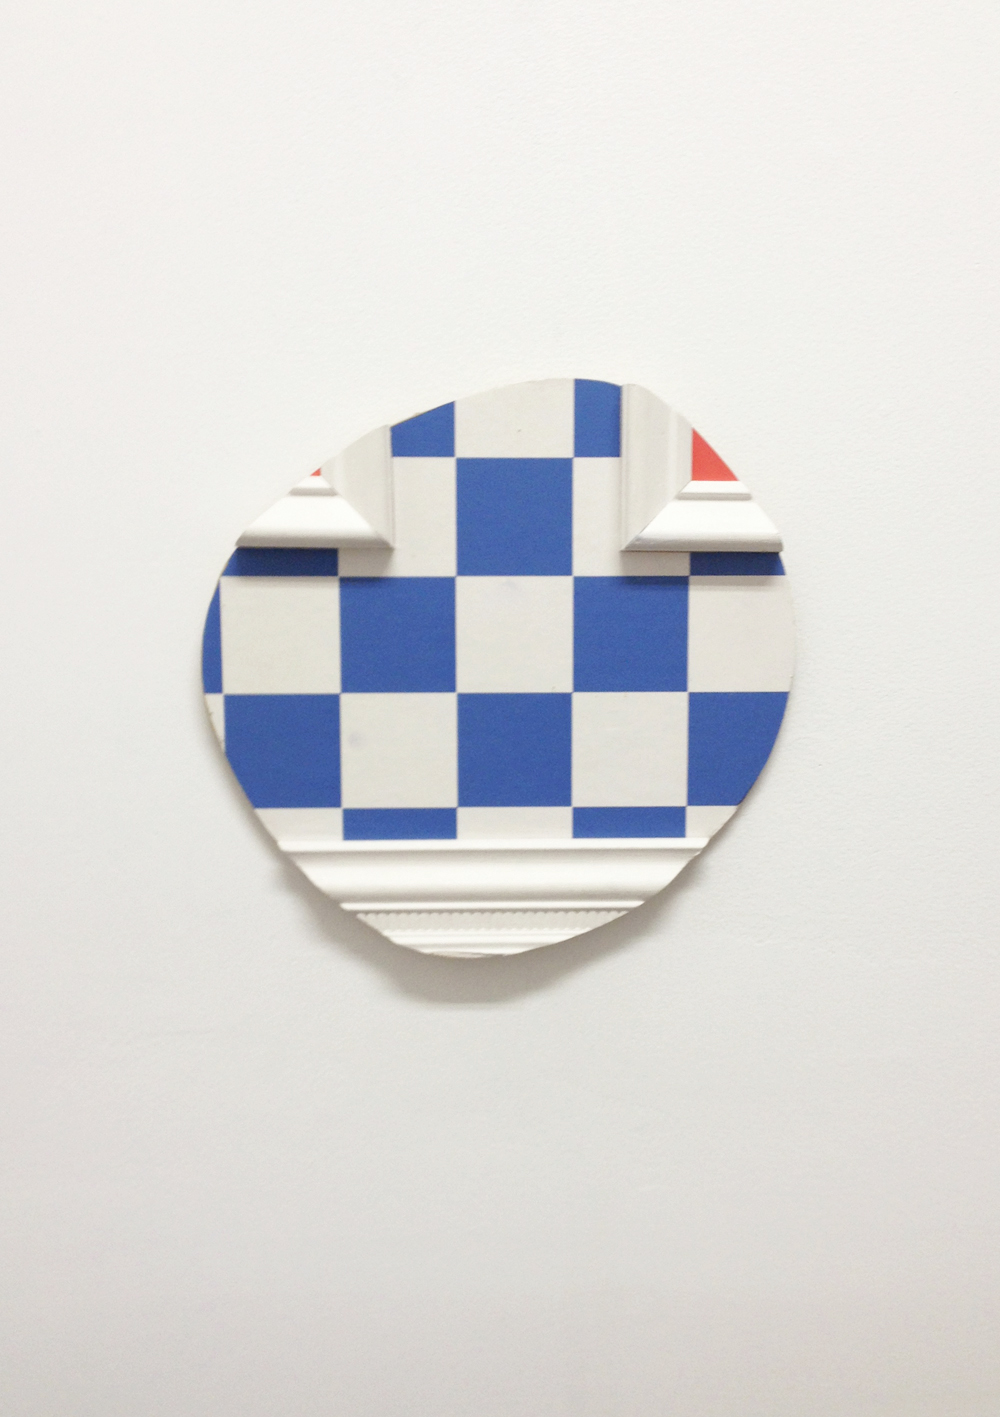 Untitled (checkers), 2012